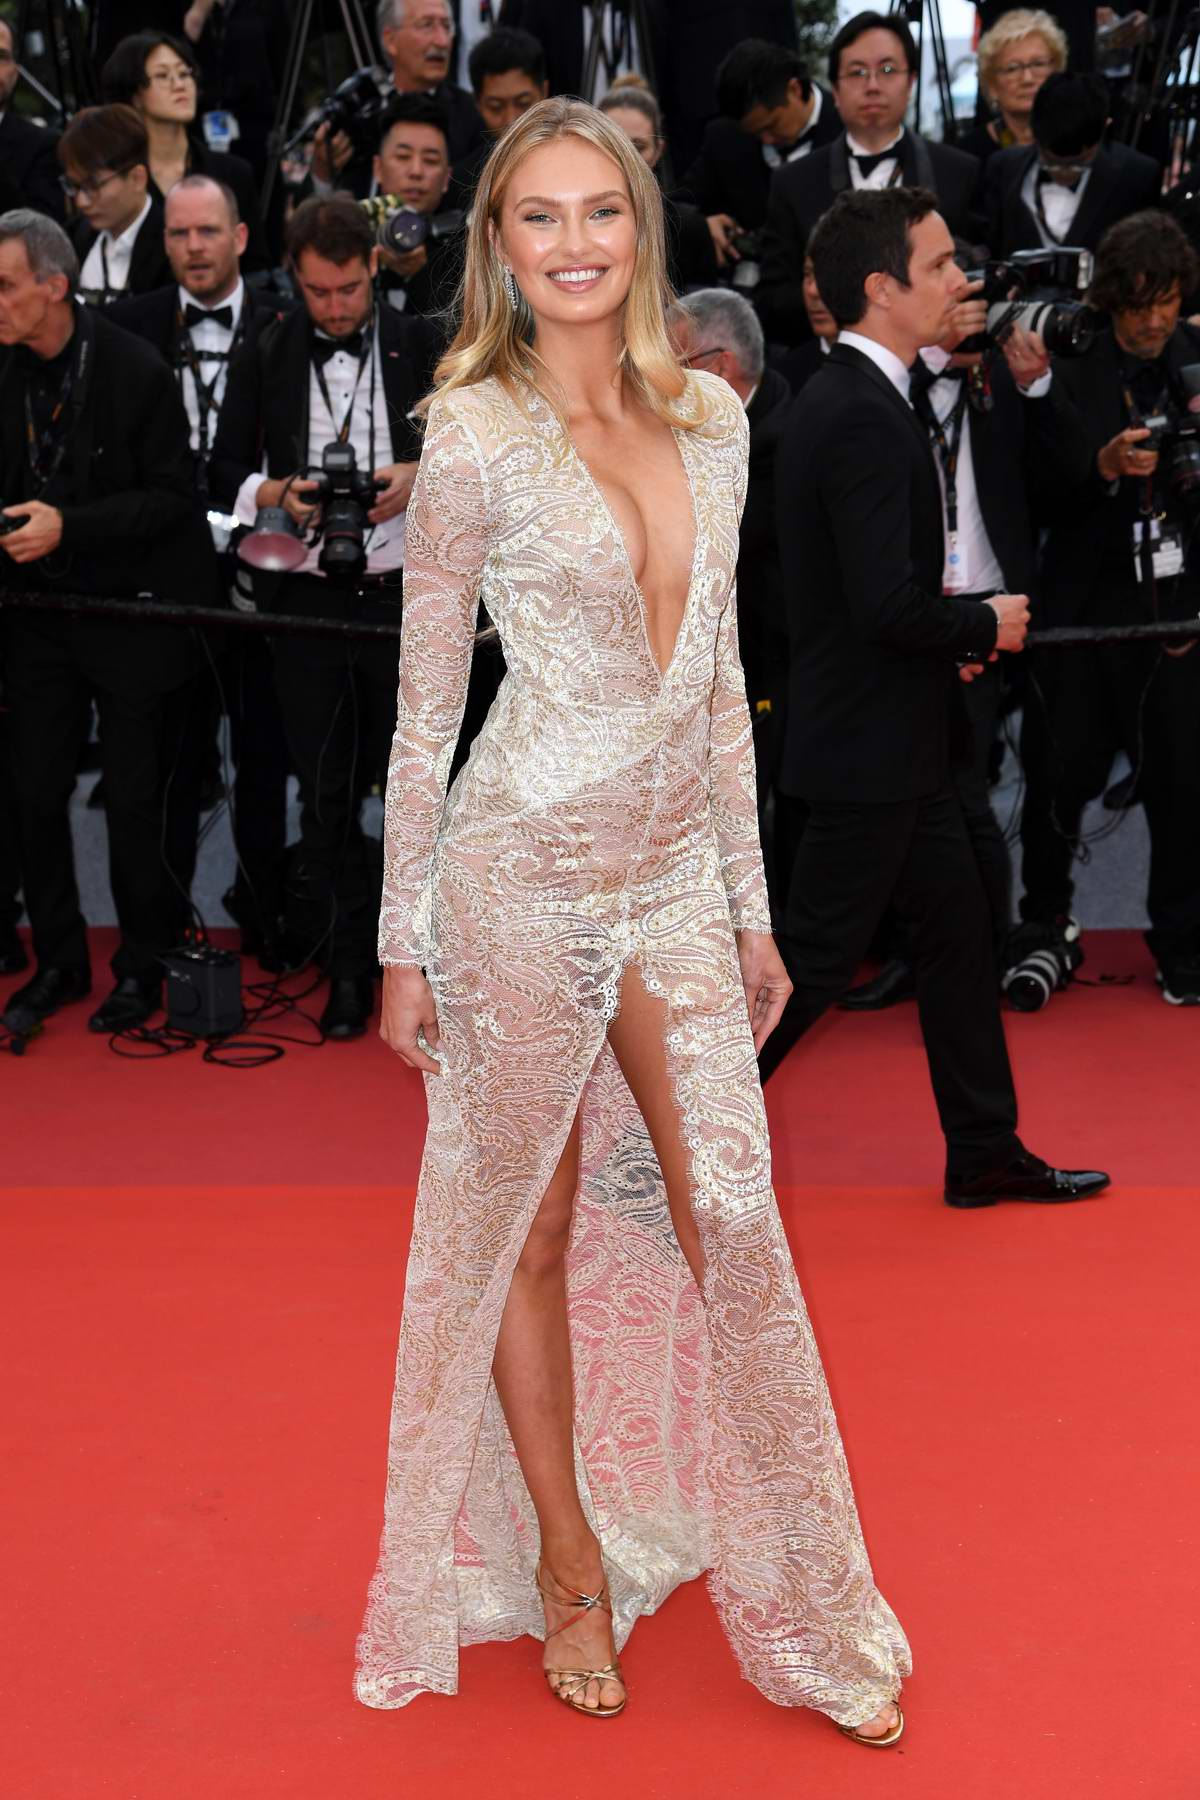 Romee Strijd attends 'The Dead Don't Die' Premiere during The 72nd annual Cannes Film Festival in Cannes, France